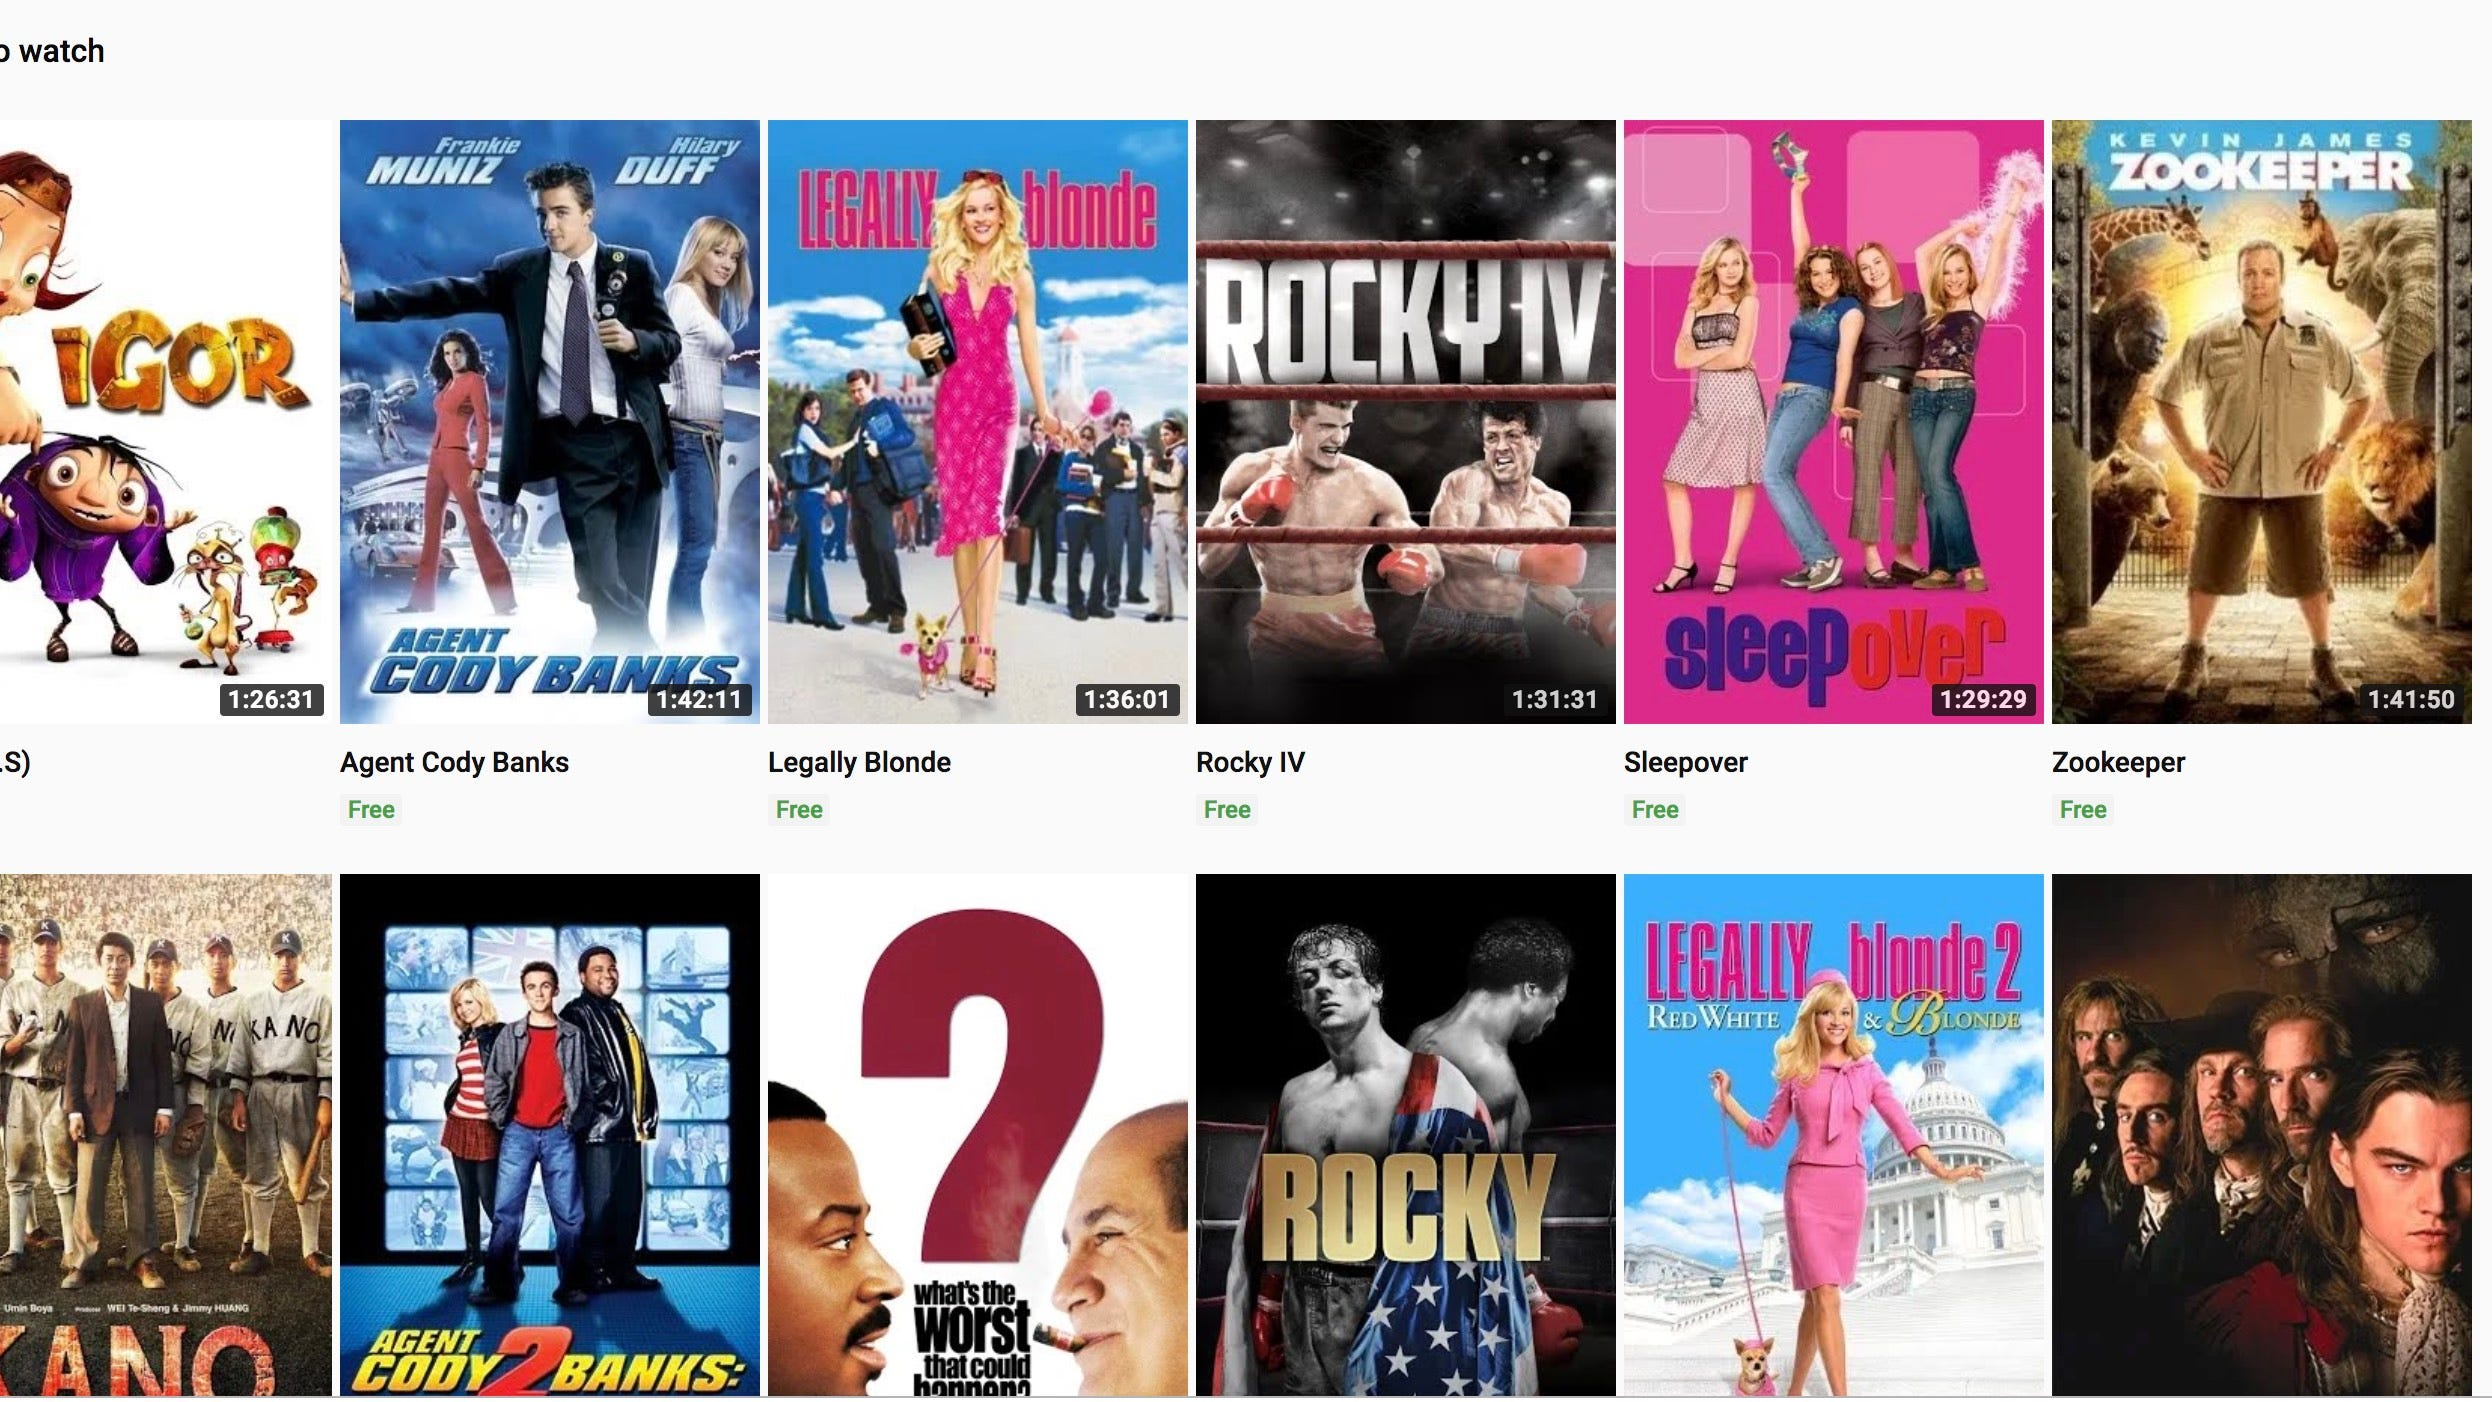 Youtube Now Offers Free Movies Including Rocky Pink Panther Films